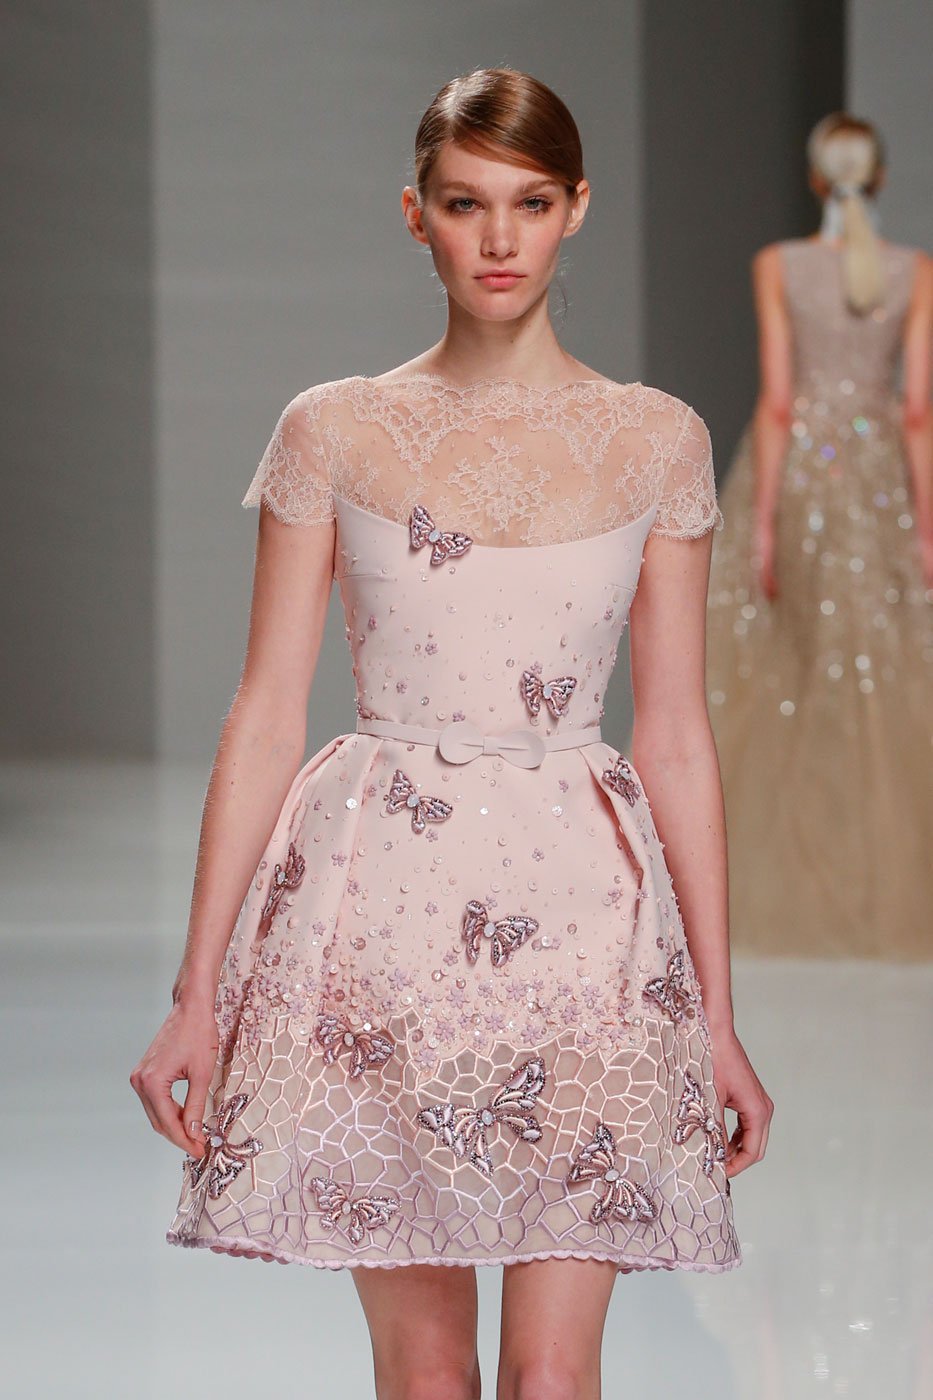 Georges-Hobeika-fashion-runway-show-haute-couture-paris-spring-2015-the-impression-58